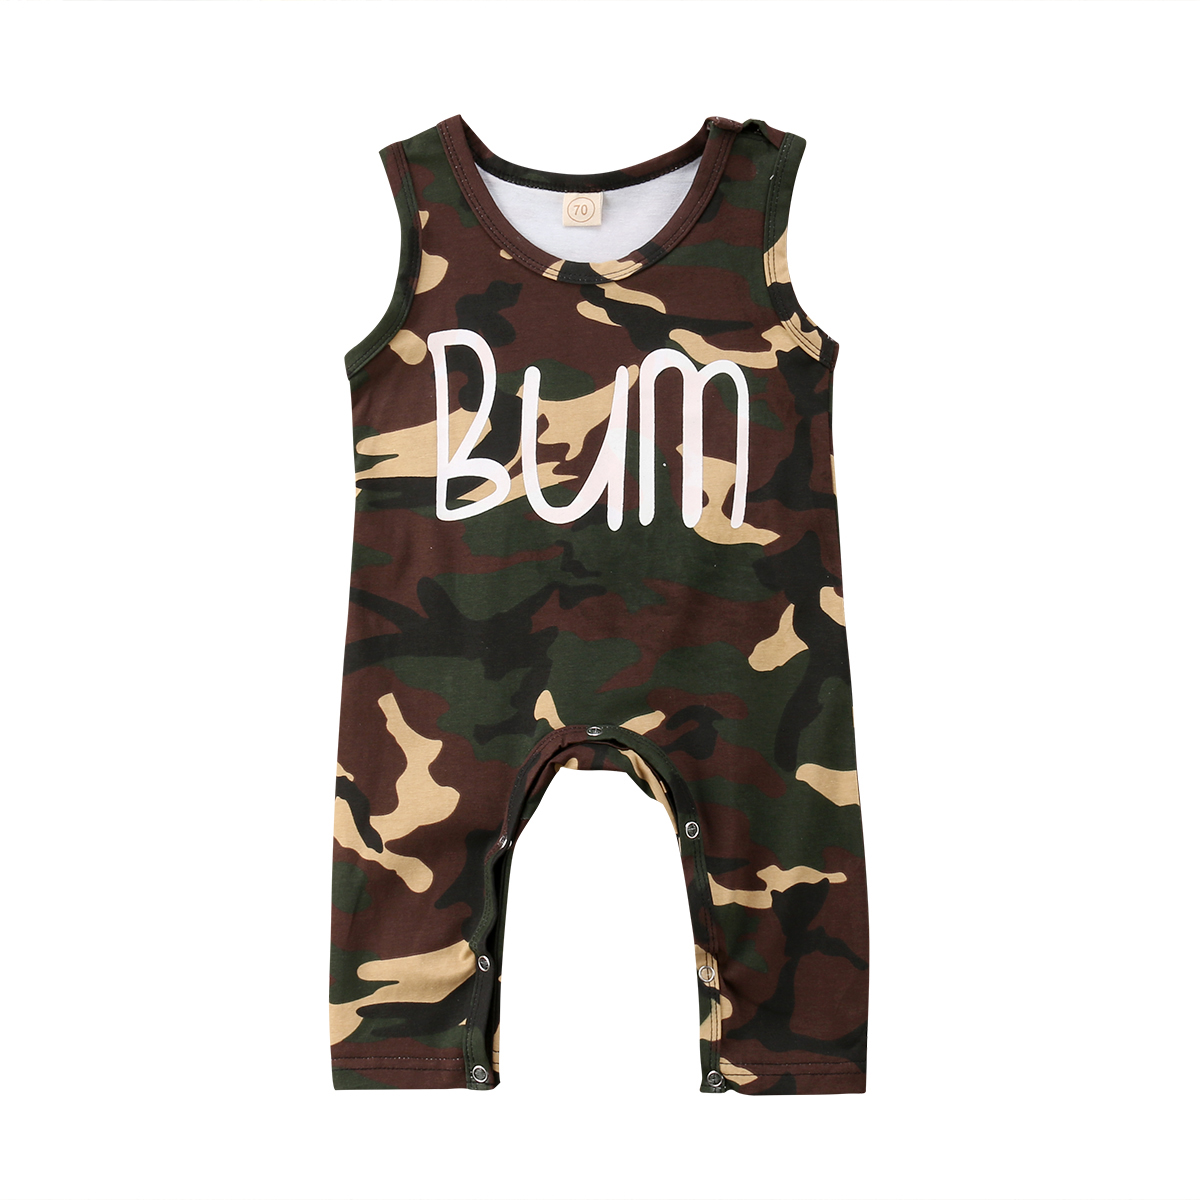 0-24M Newborn Baby Boy Summer Sleeveless Camouflage Romper Jumpsuit Outfits Baby Clothes